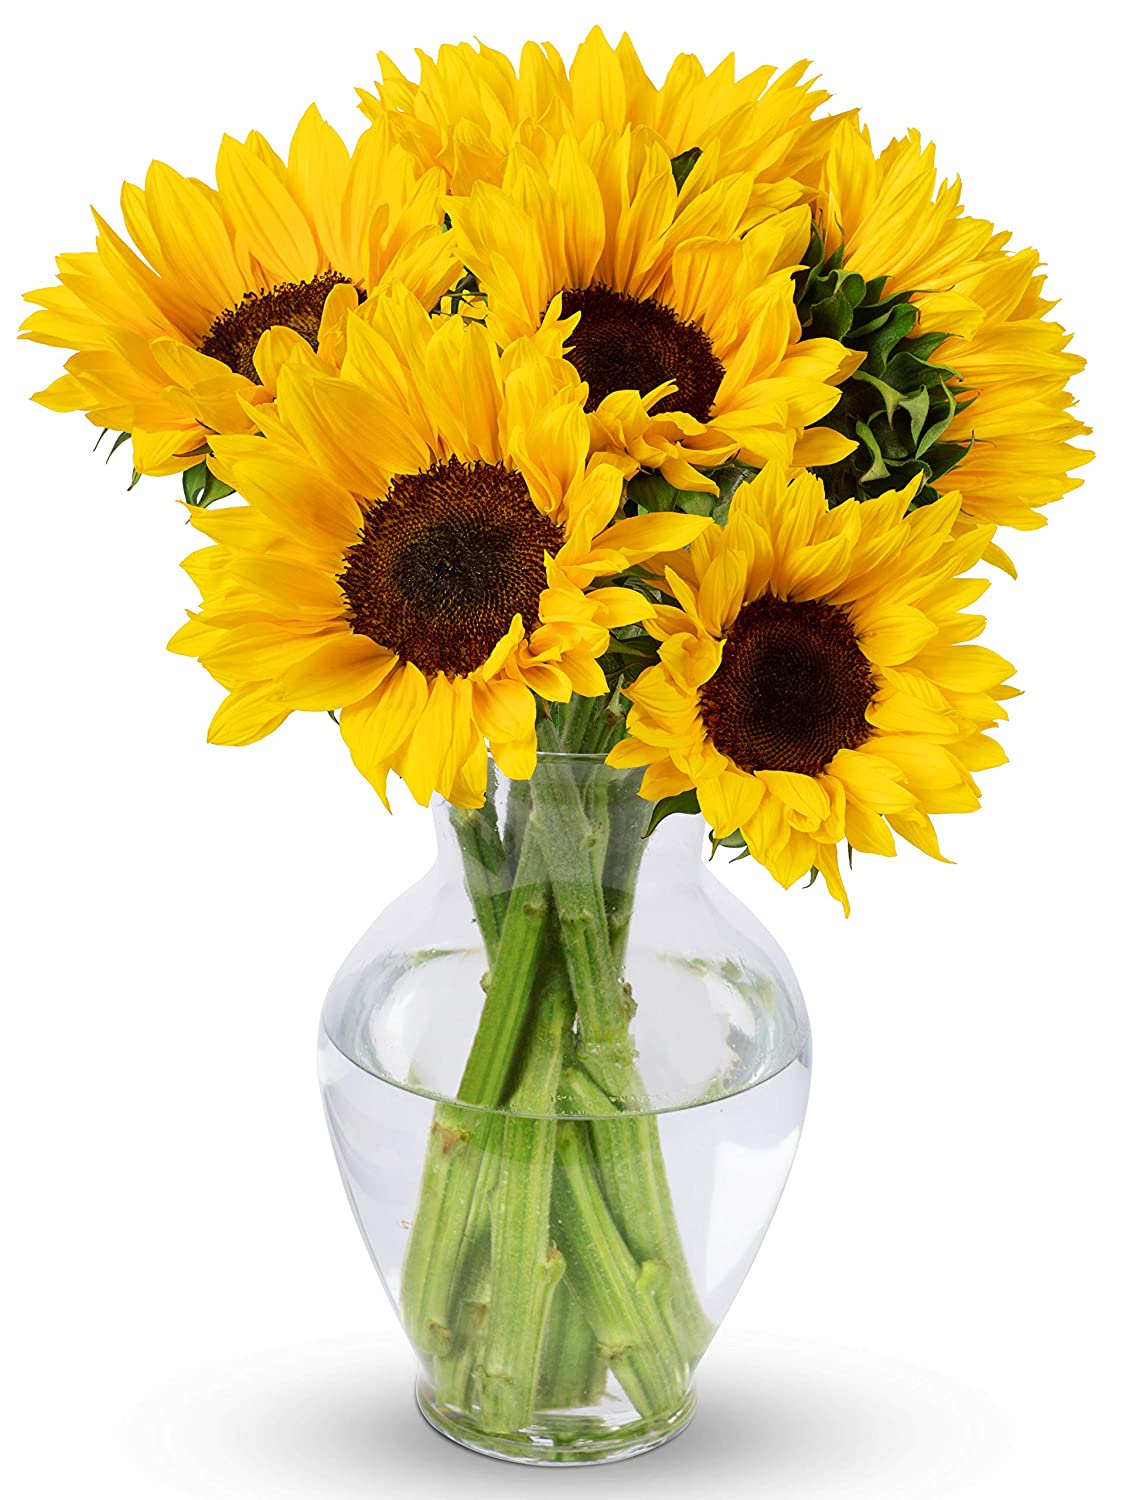 260 & Benchmark Bouquets Yellow Sunflowers With Vase (Fresh Cut Flowers)